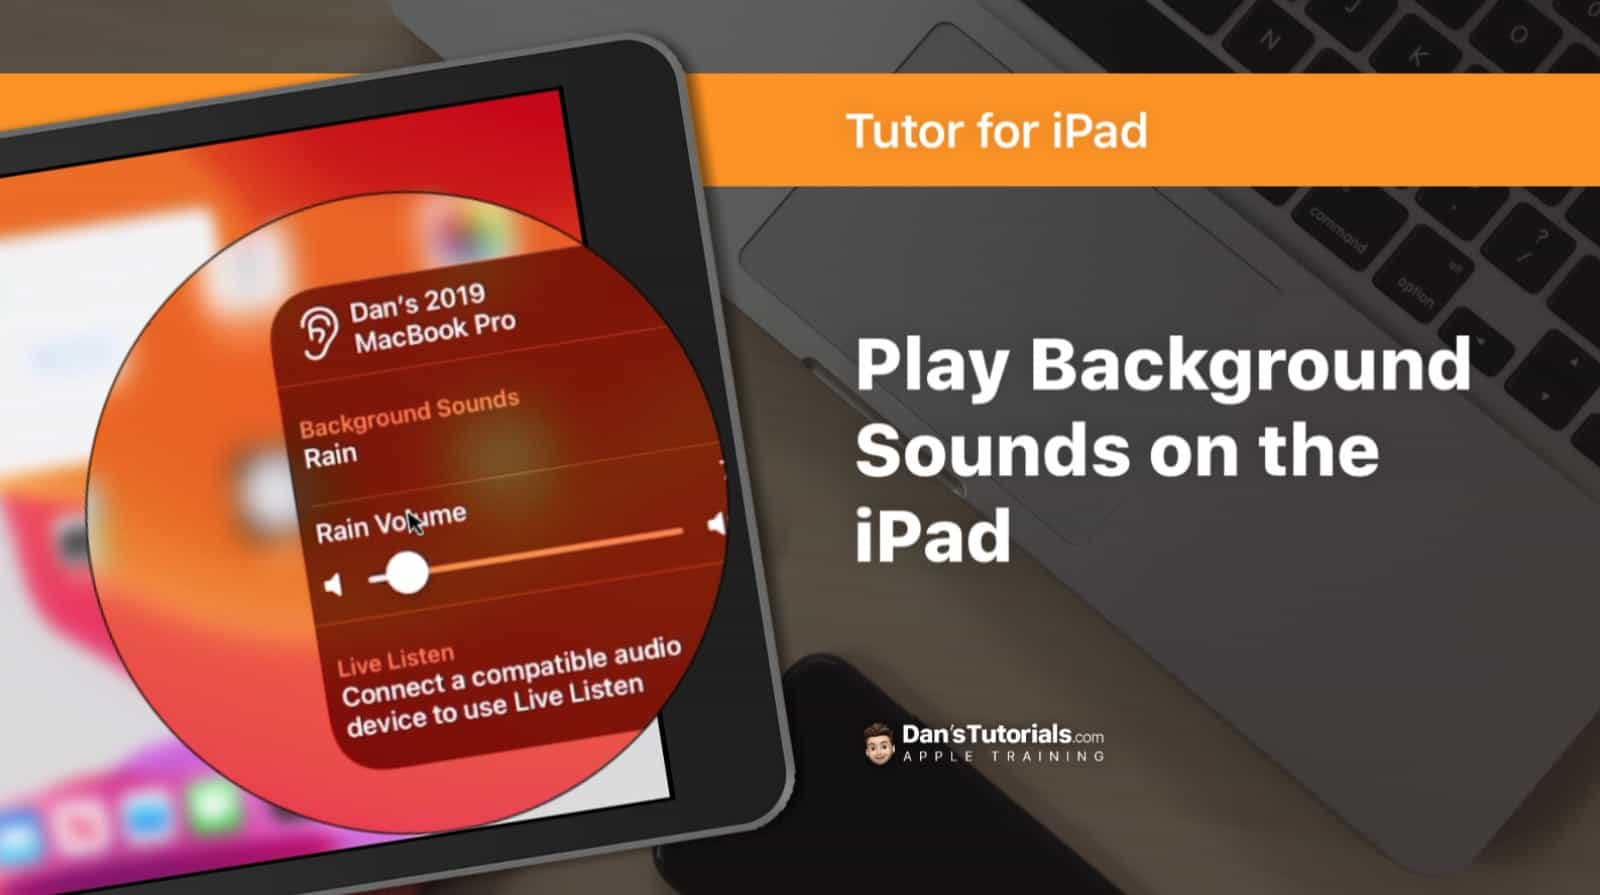 Play Background Sounds on the iPad